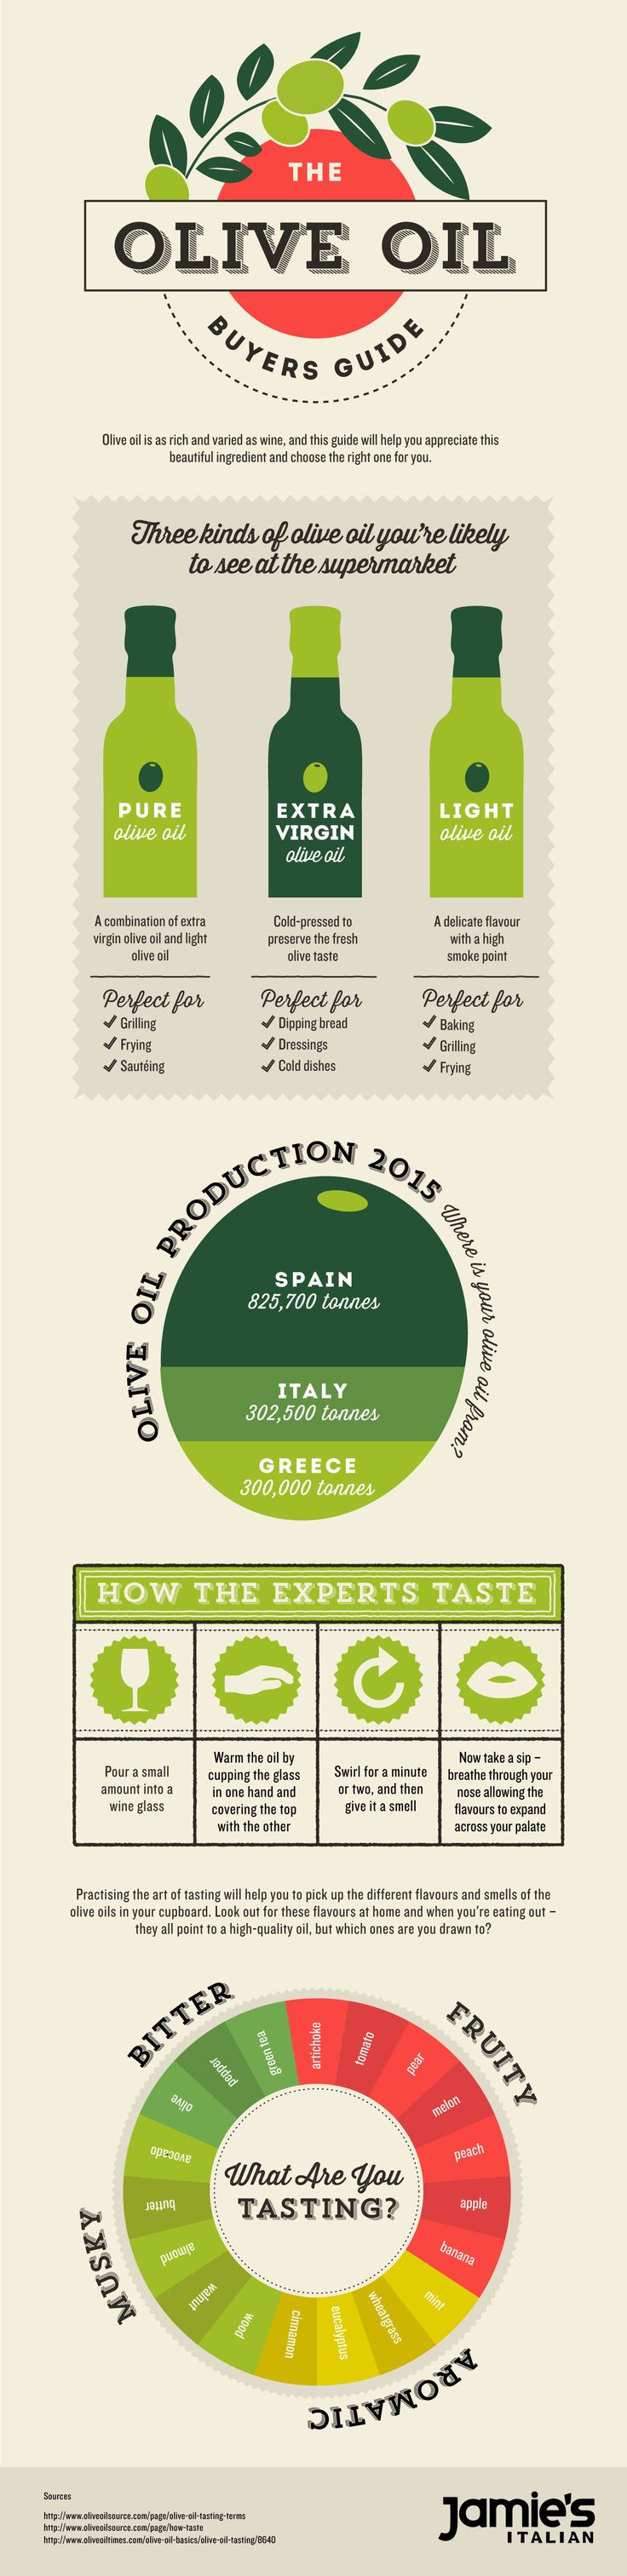 Jamie's Italian Olive Oil Infographic ... All you could possibly want to know about olive oil plus a recipe round up #oliveoil #jamieoliver #jamiesitalian